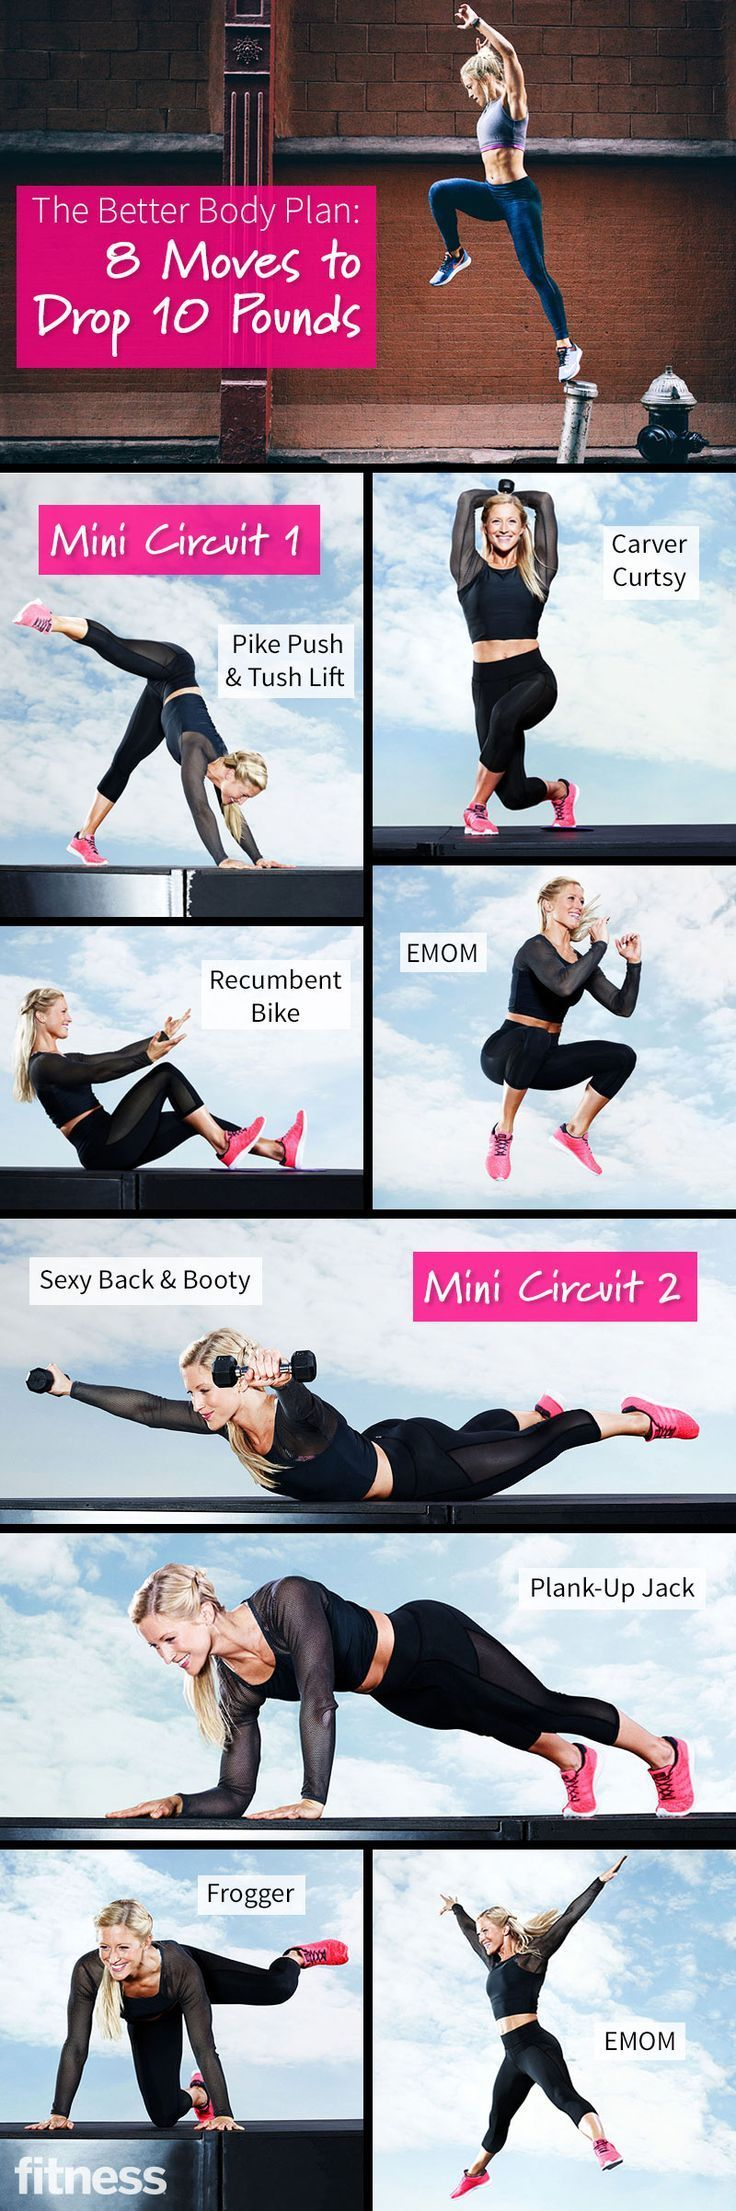 8 Moves To Drop 10 Pounds fitness workout weight loss exercise cardio home exercise diy exercise routine fat loss exercise routine